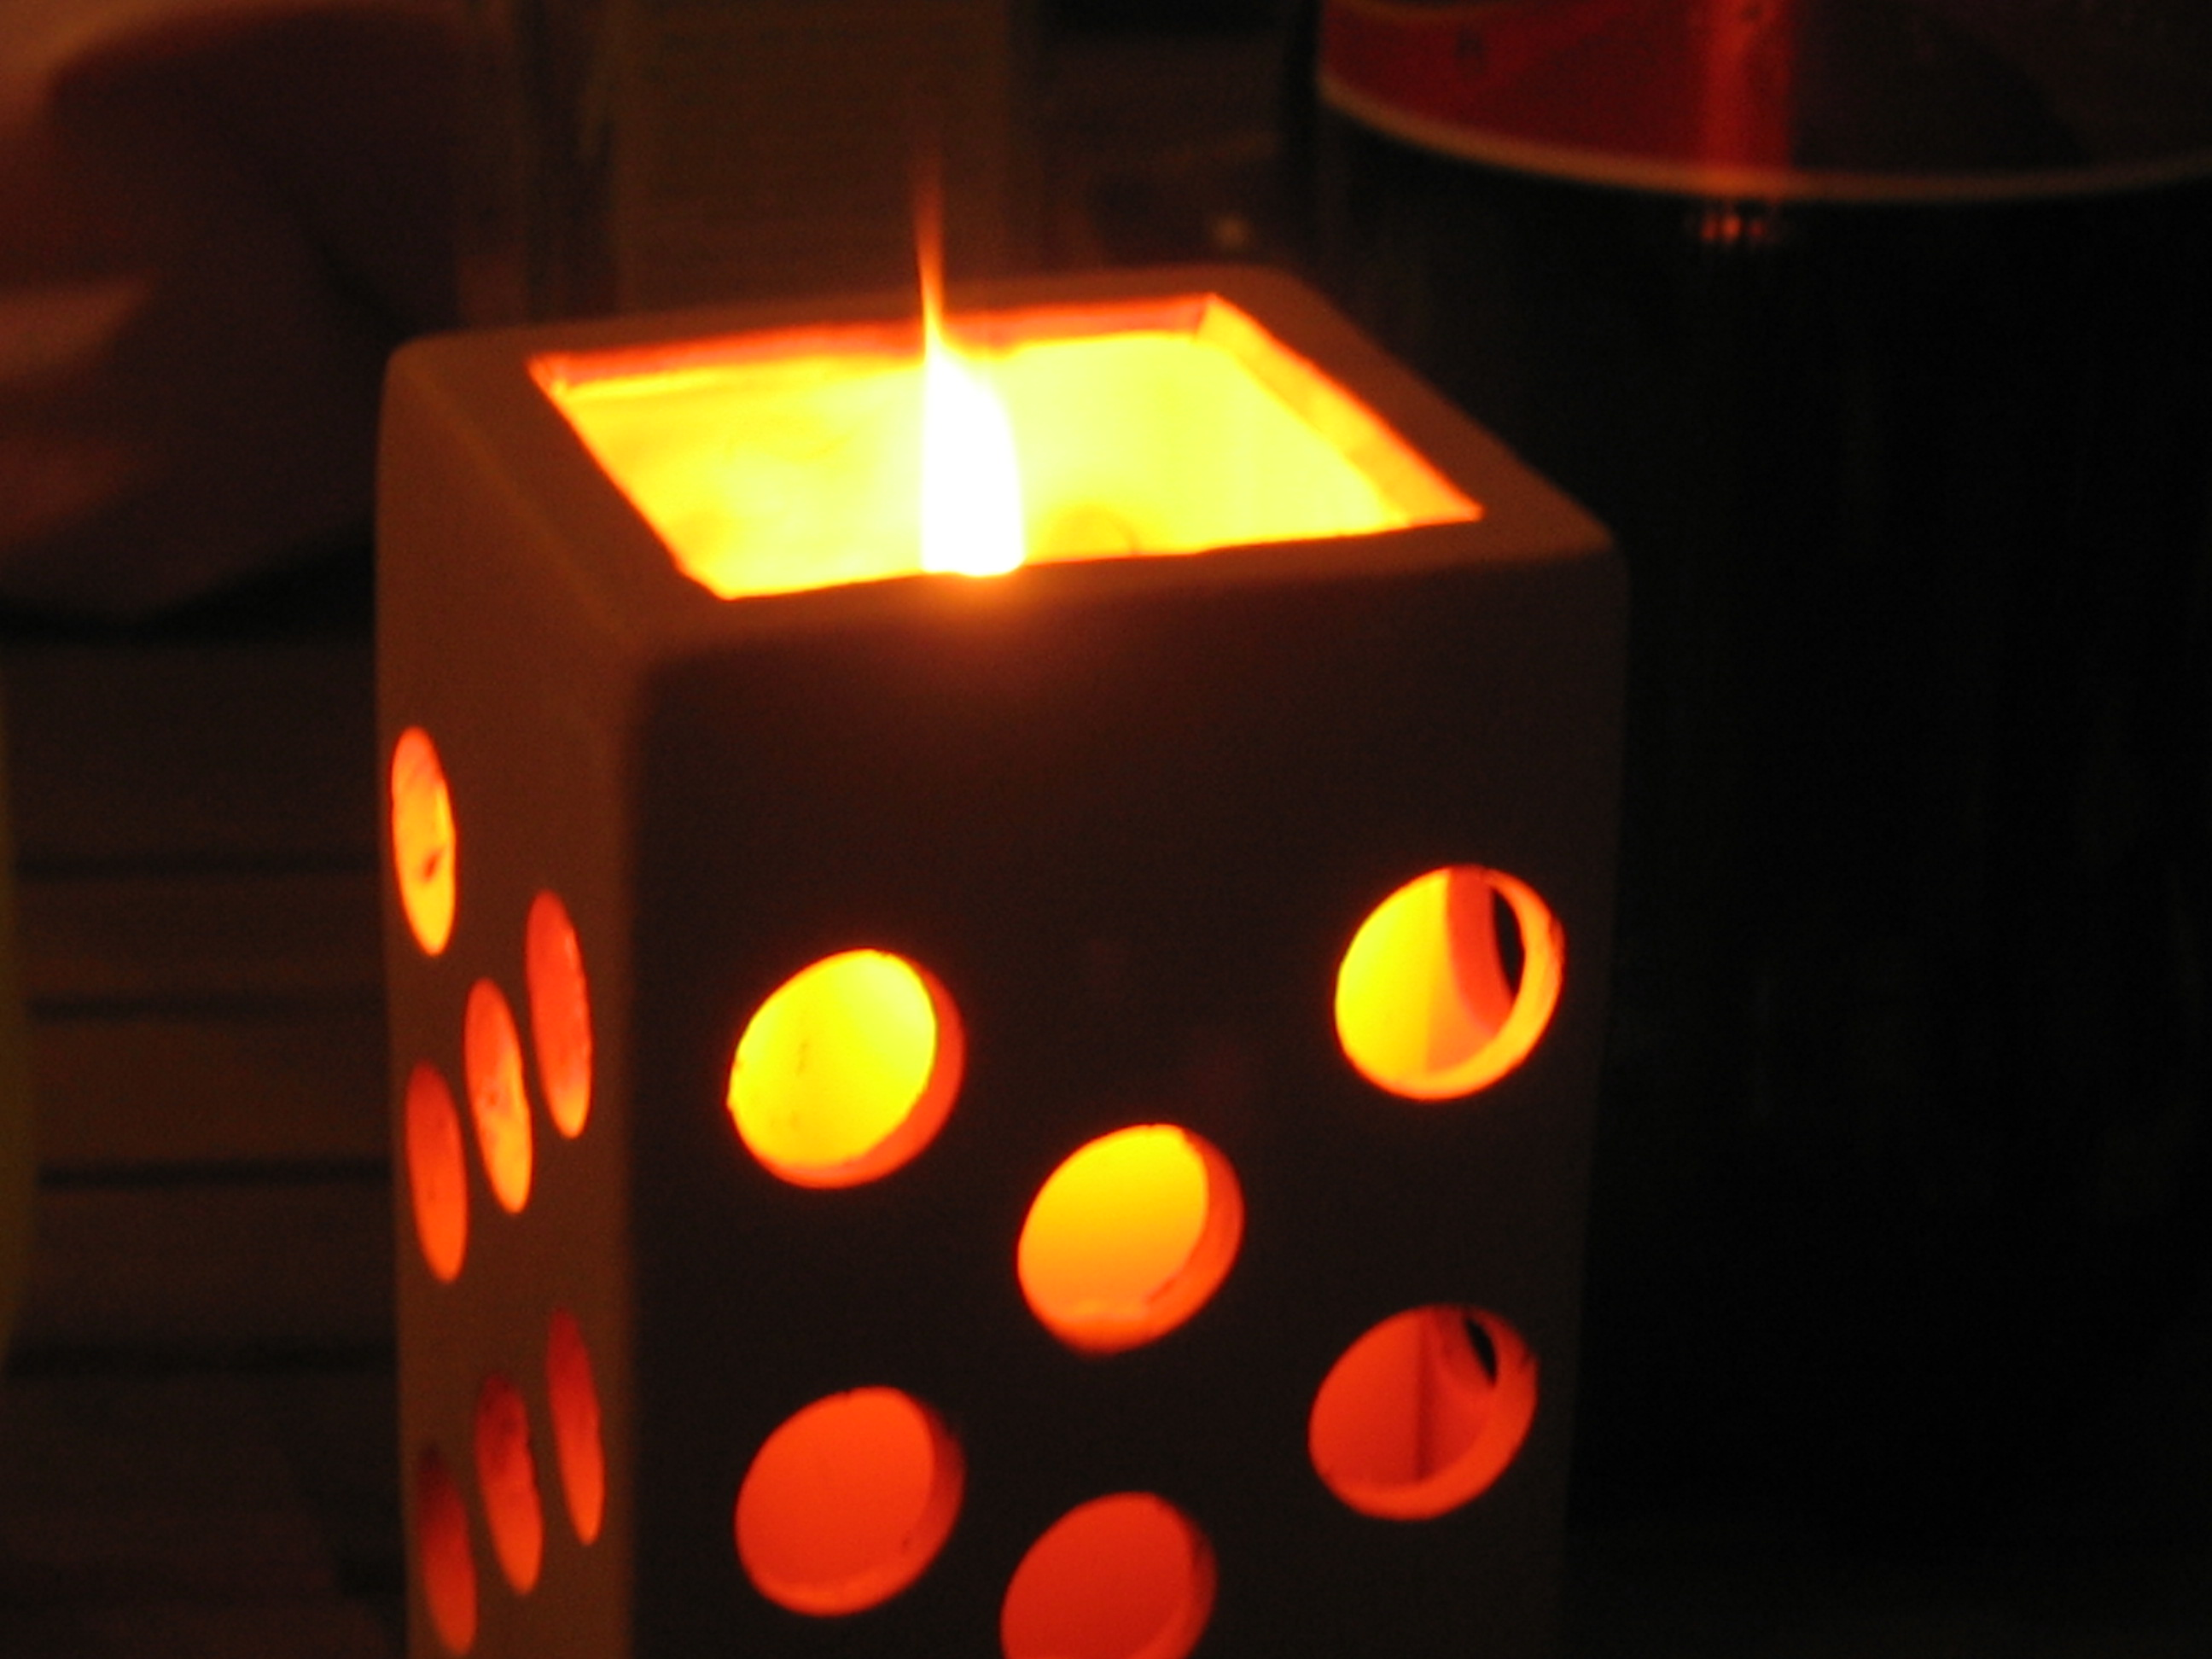 Uncategorized Candles In Room safety tips to prevent house fire damages from candles never burn in rooms with drafts vents fans or air currents this leads uneven burning flare ups and soot formation